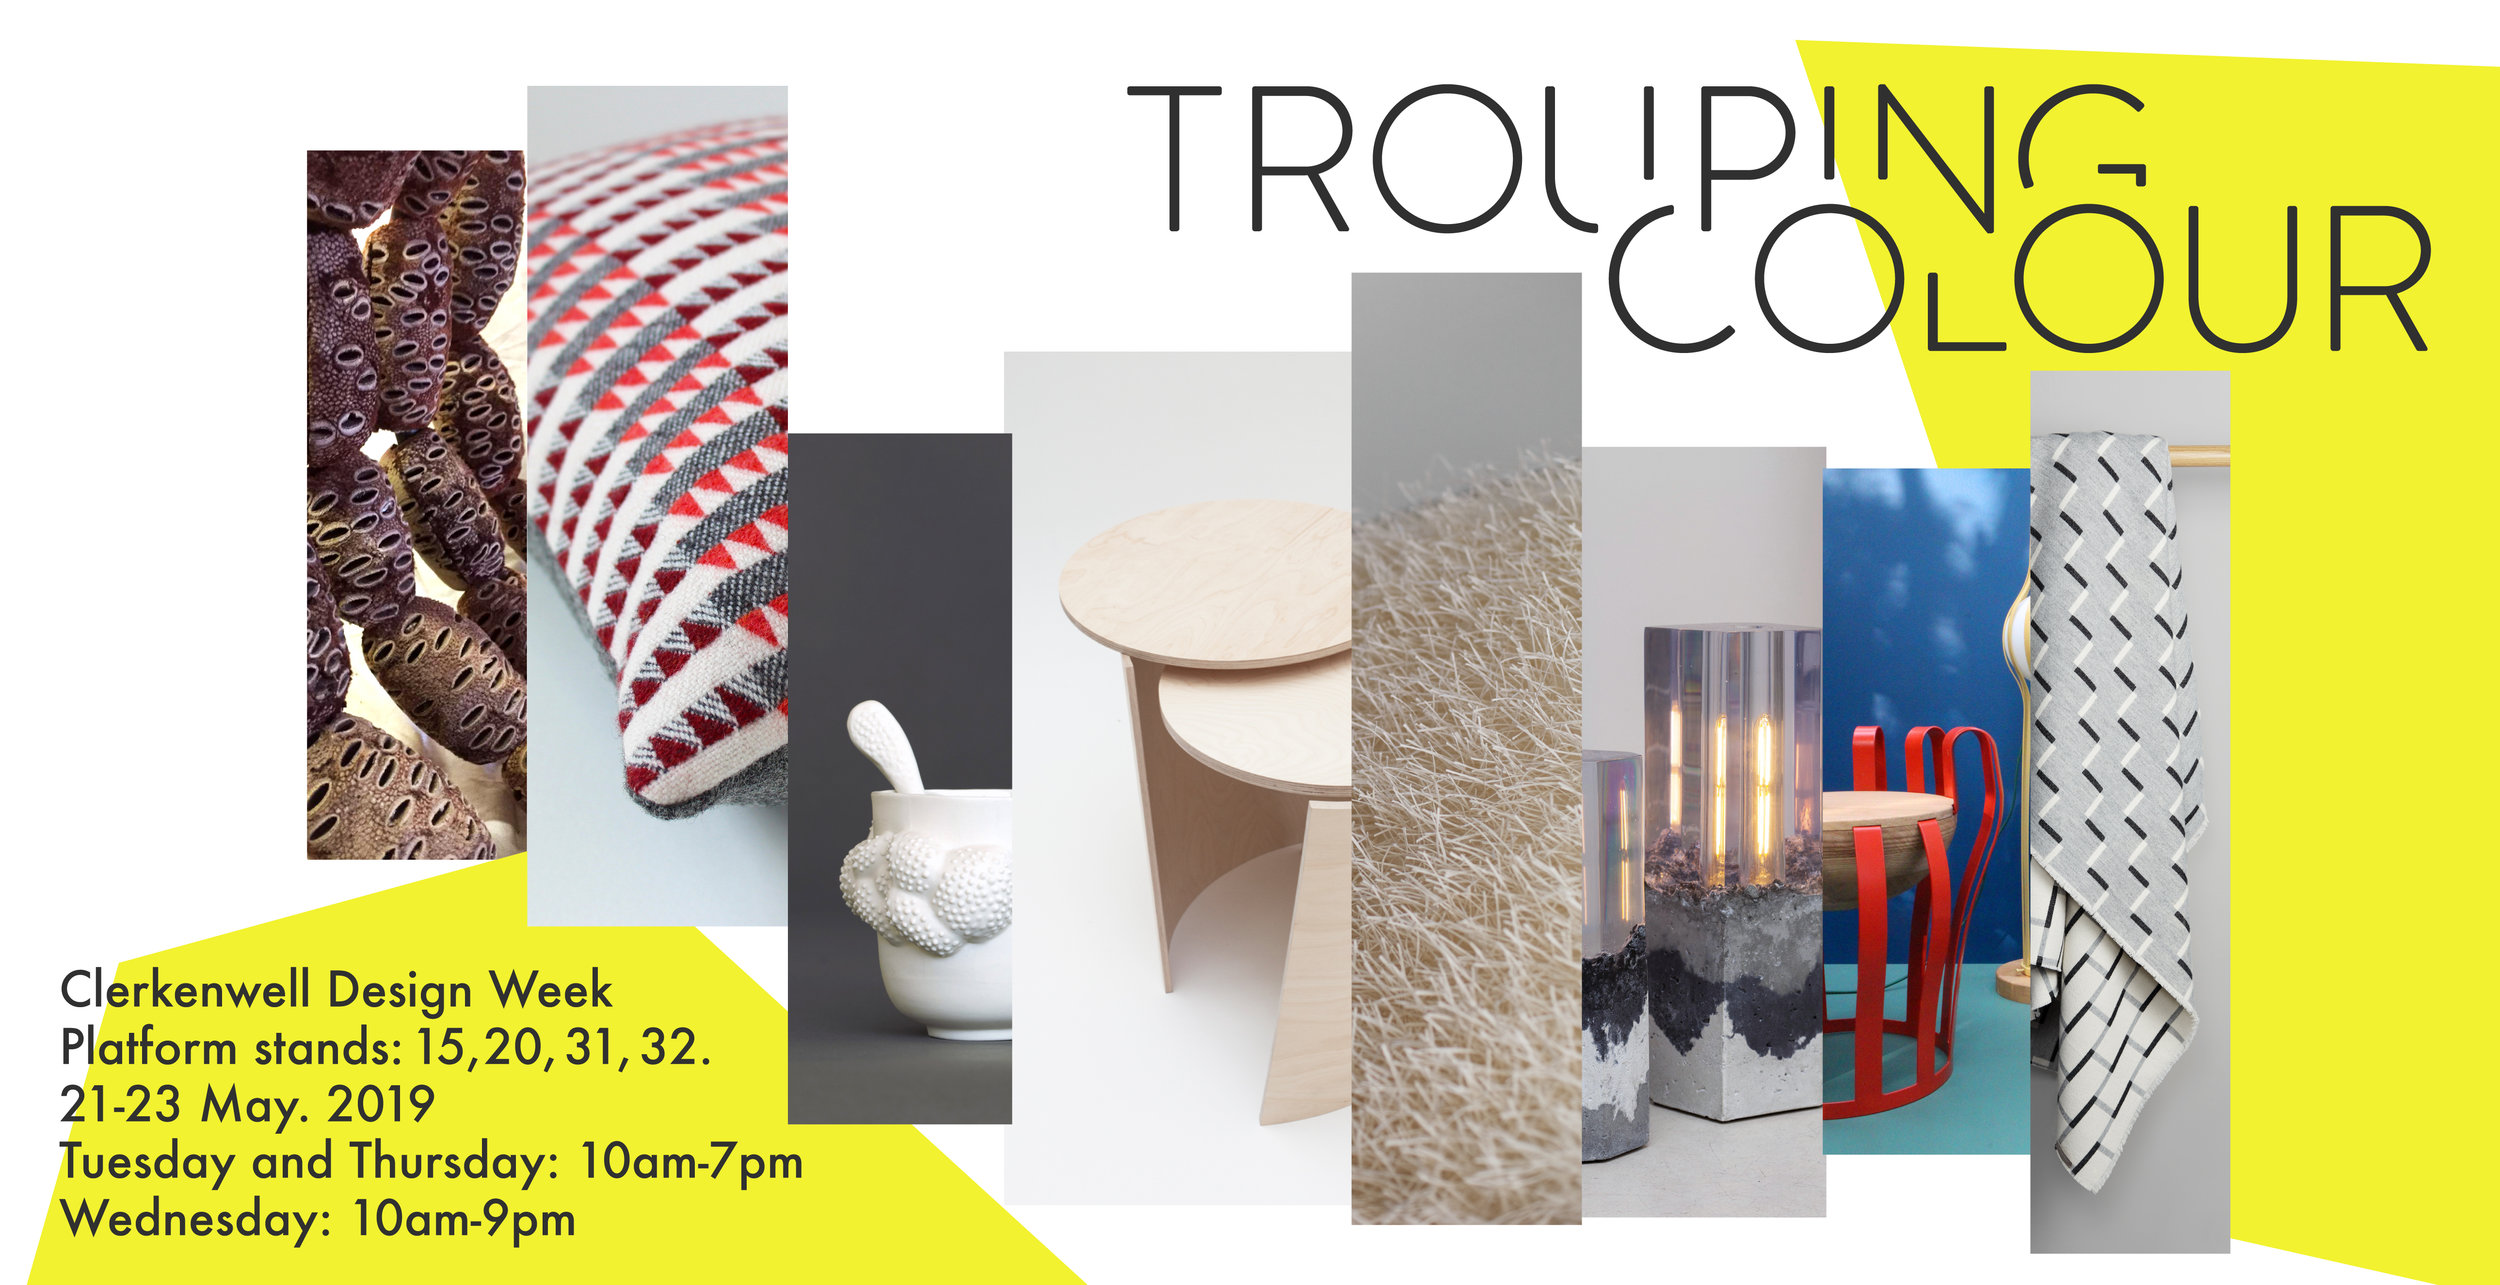 Trouping Colour Clerkenwell Design Week 2019